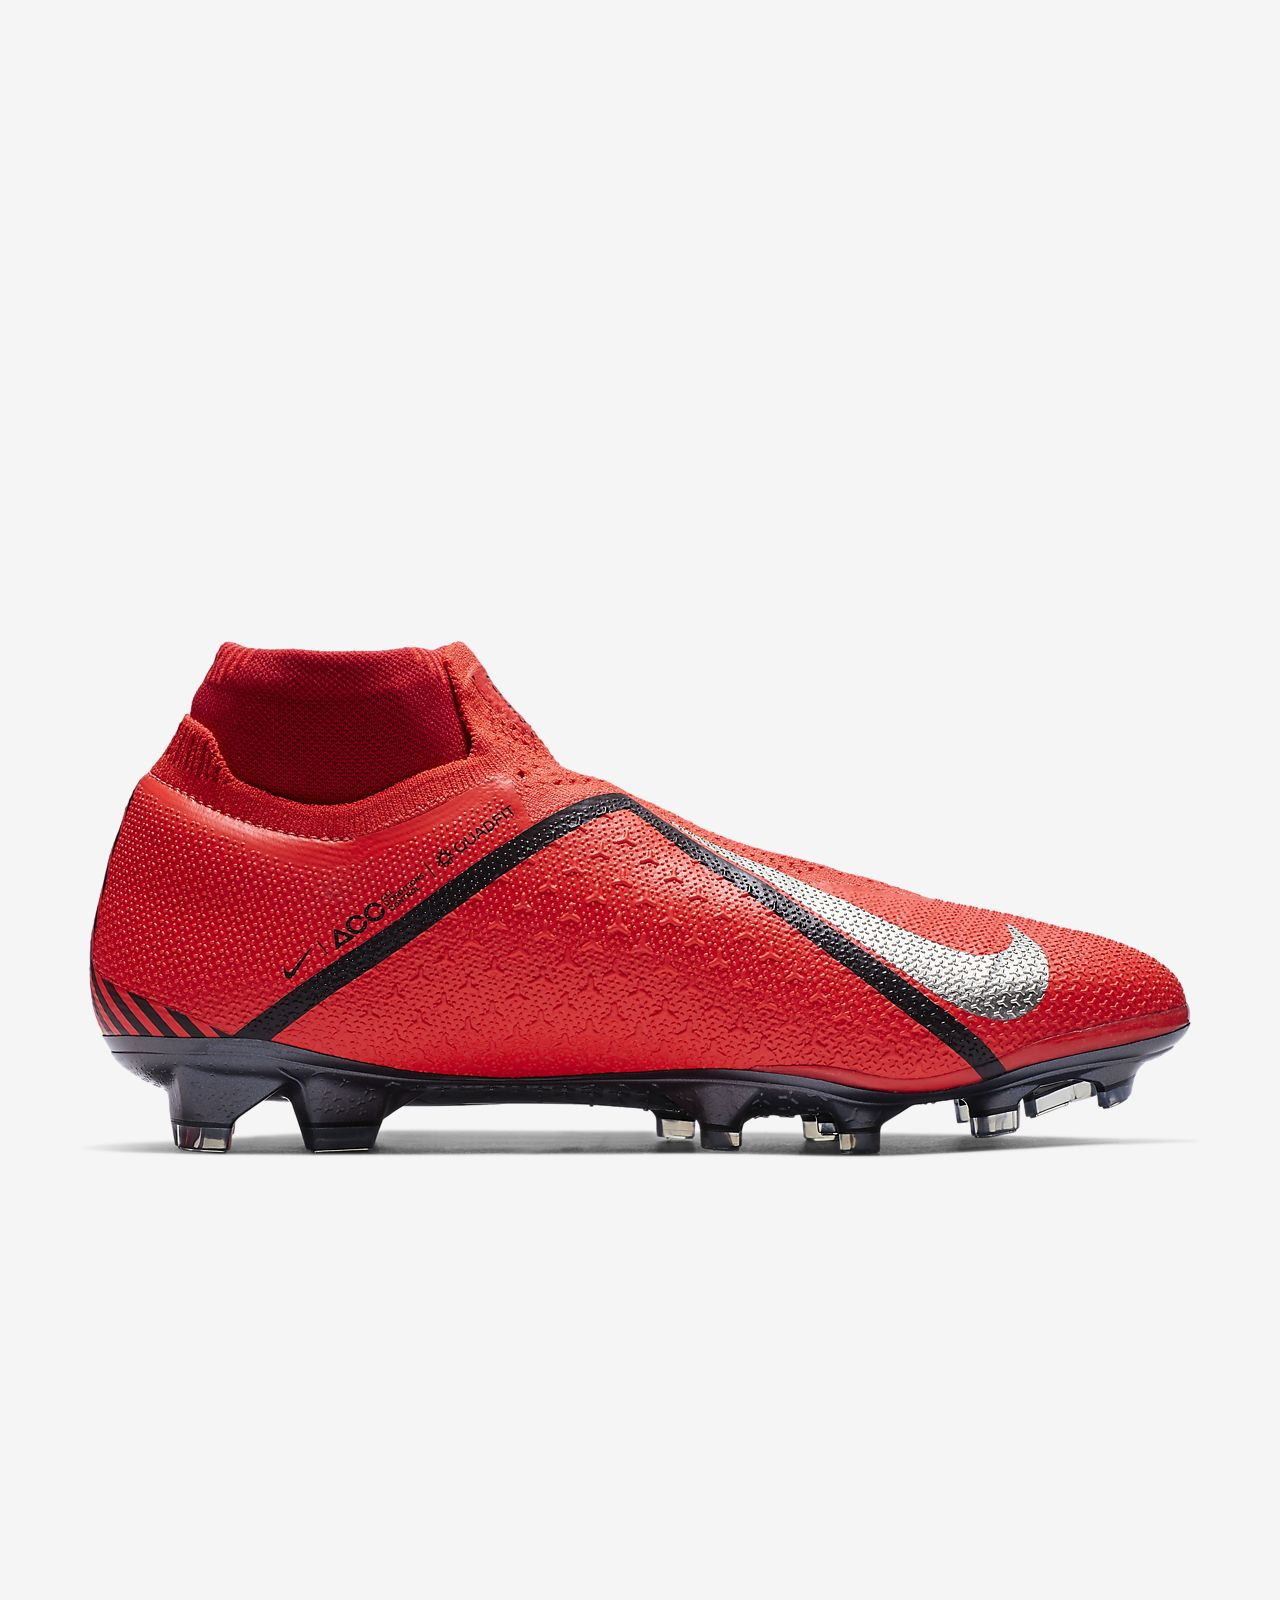 pretty nice 74656 d0339 ... Nike PhantomVSN Elite Dynamic Fit Game Over FG Firm-Ground Soccer Cleat